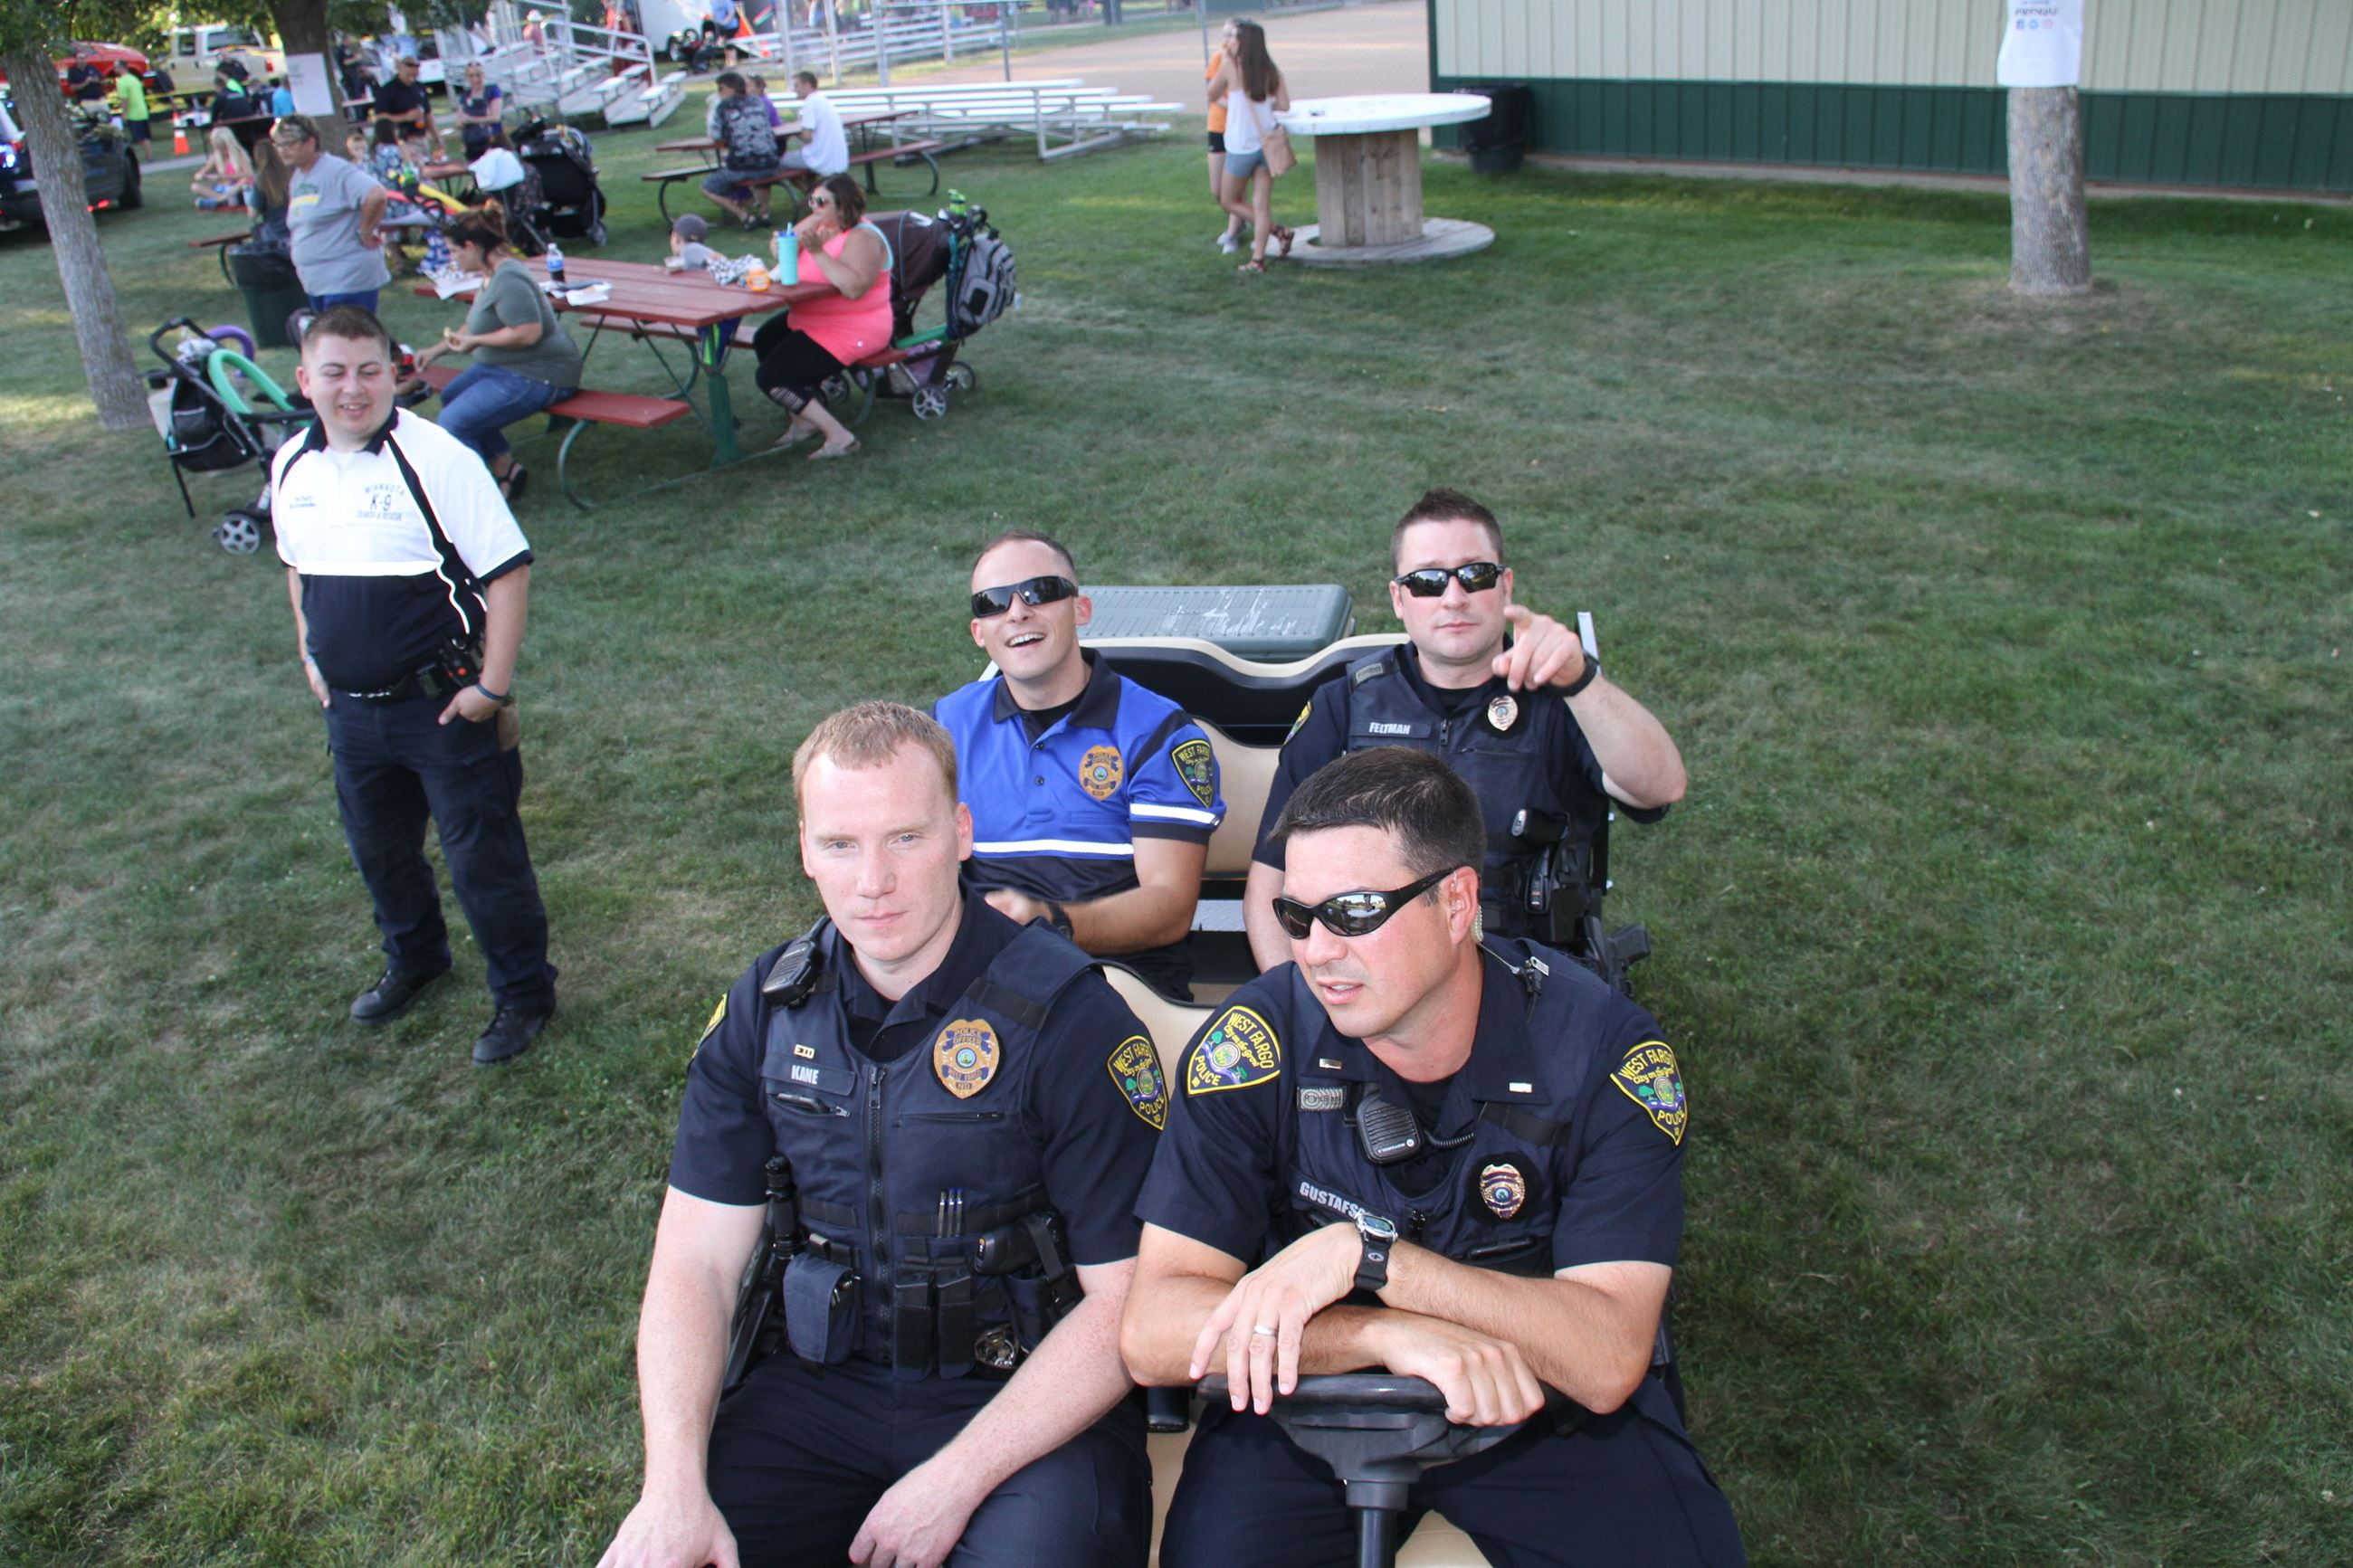 West Fargo Police Department officers prepare to join the crowds of Night to Unite